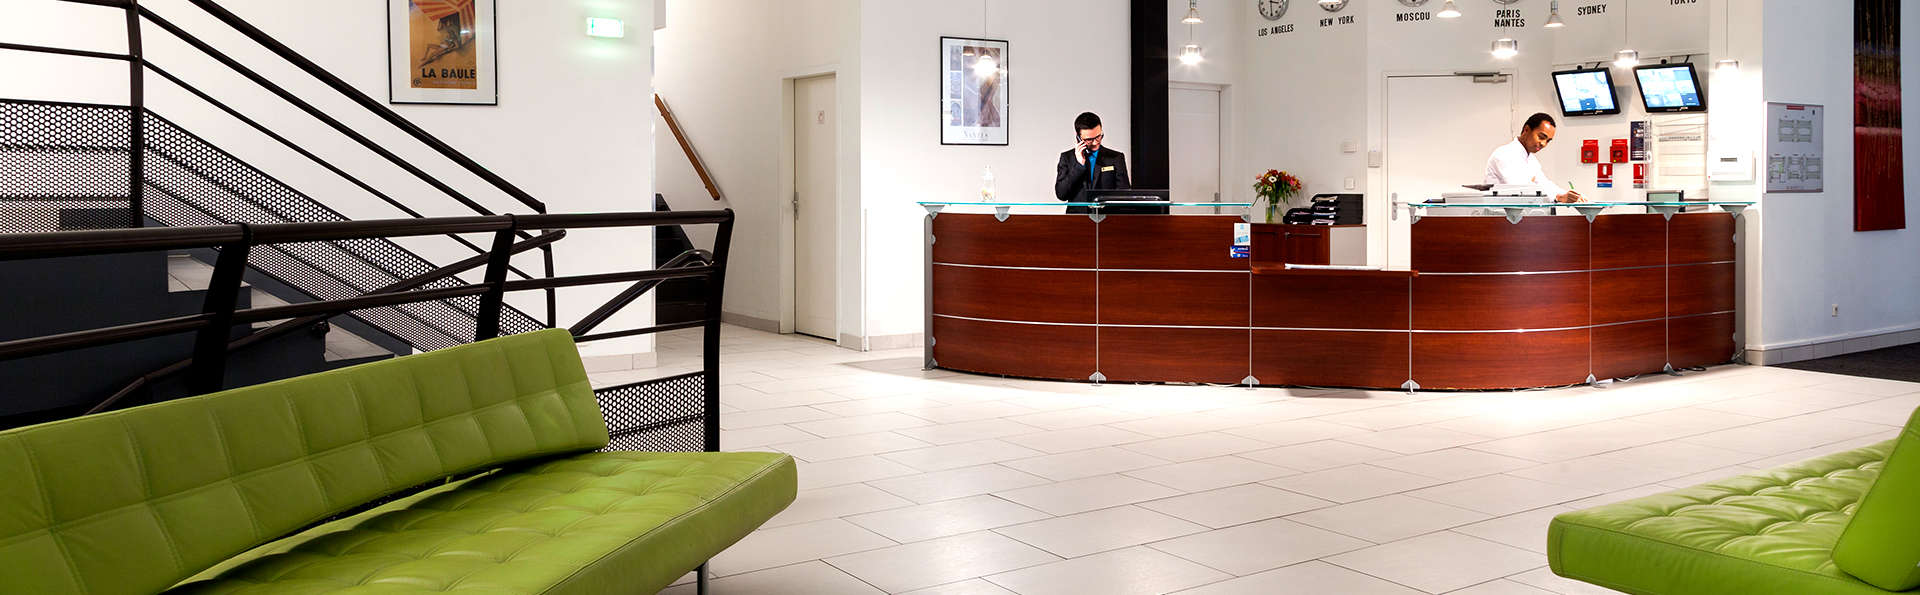 Sure Hotel by Best Western Nantes Beaujoire - Edit_Reception.jpg